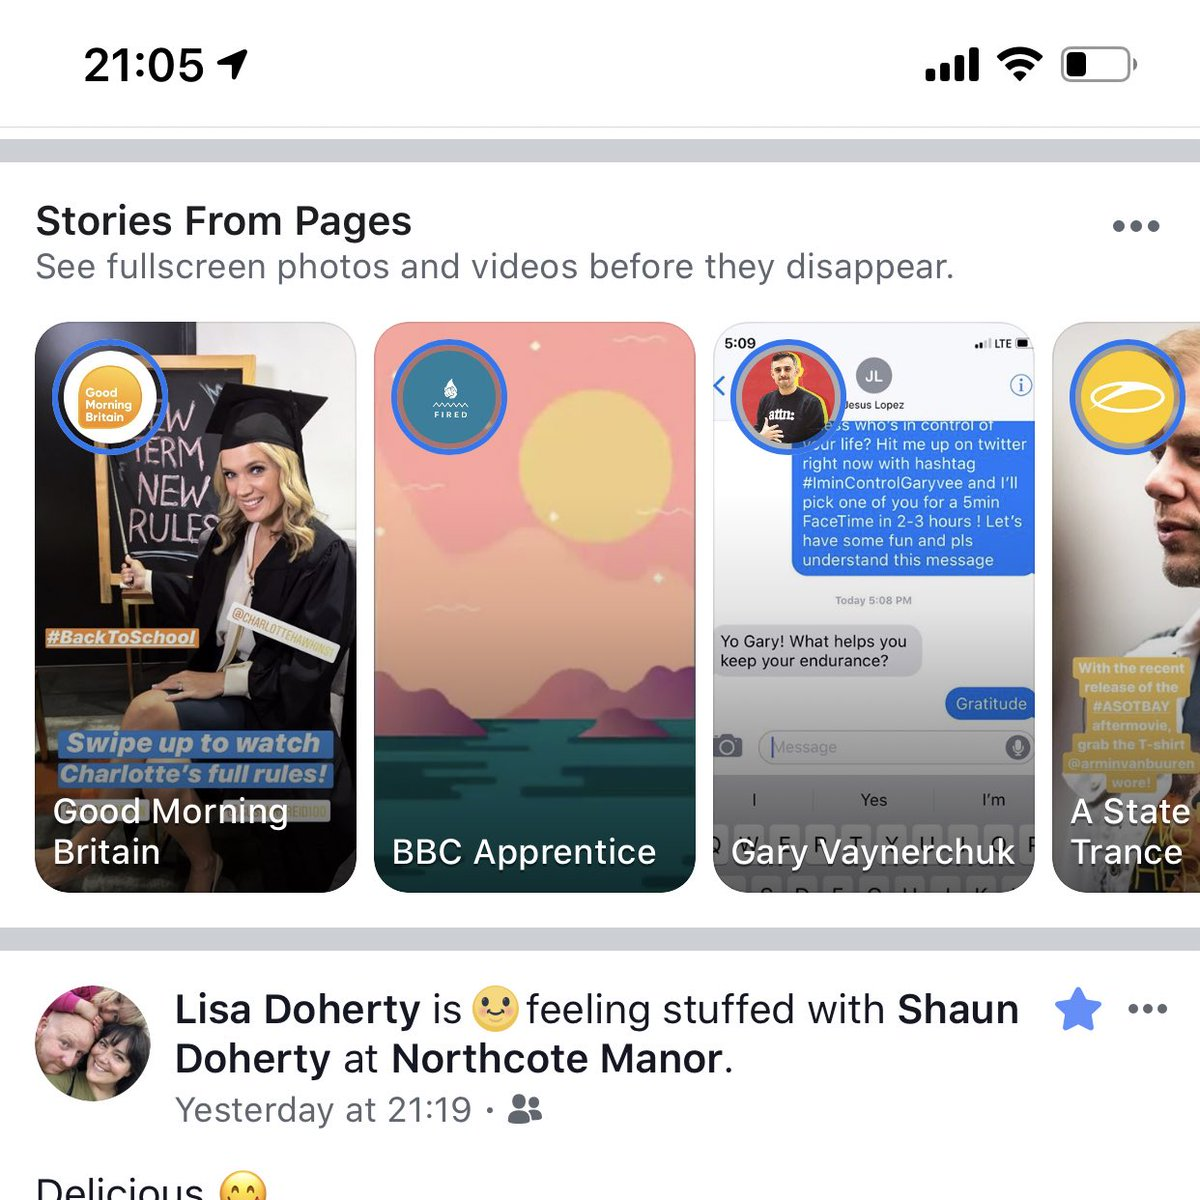 Facebook is Working on a new in-Feed Panel for Page Stories